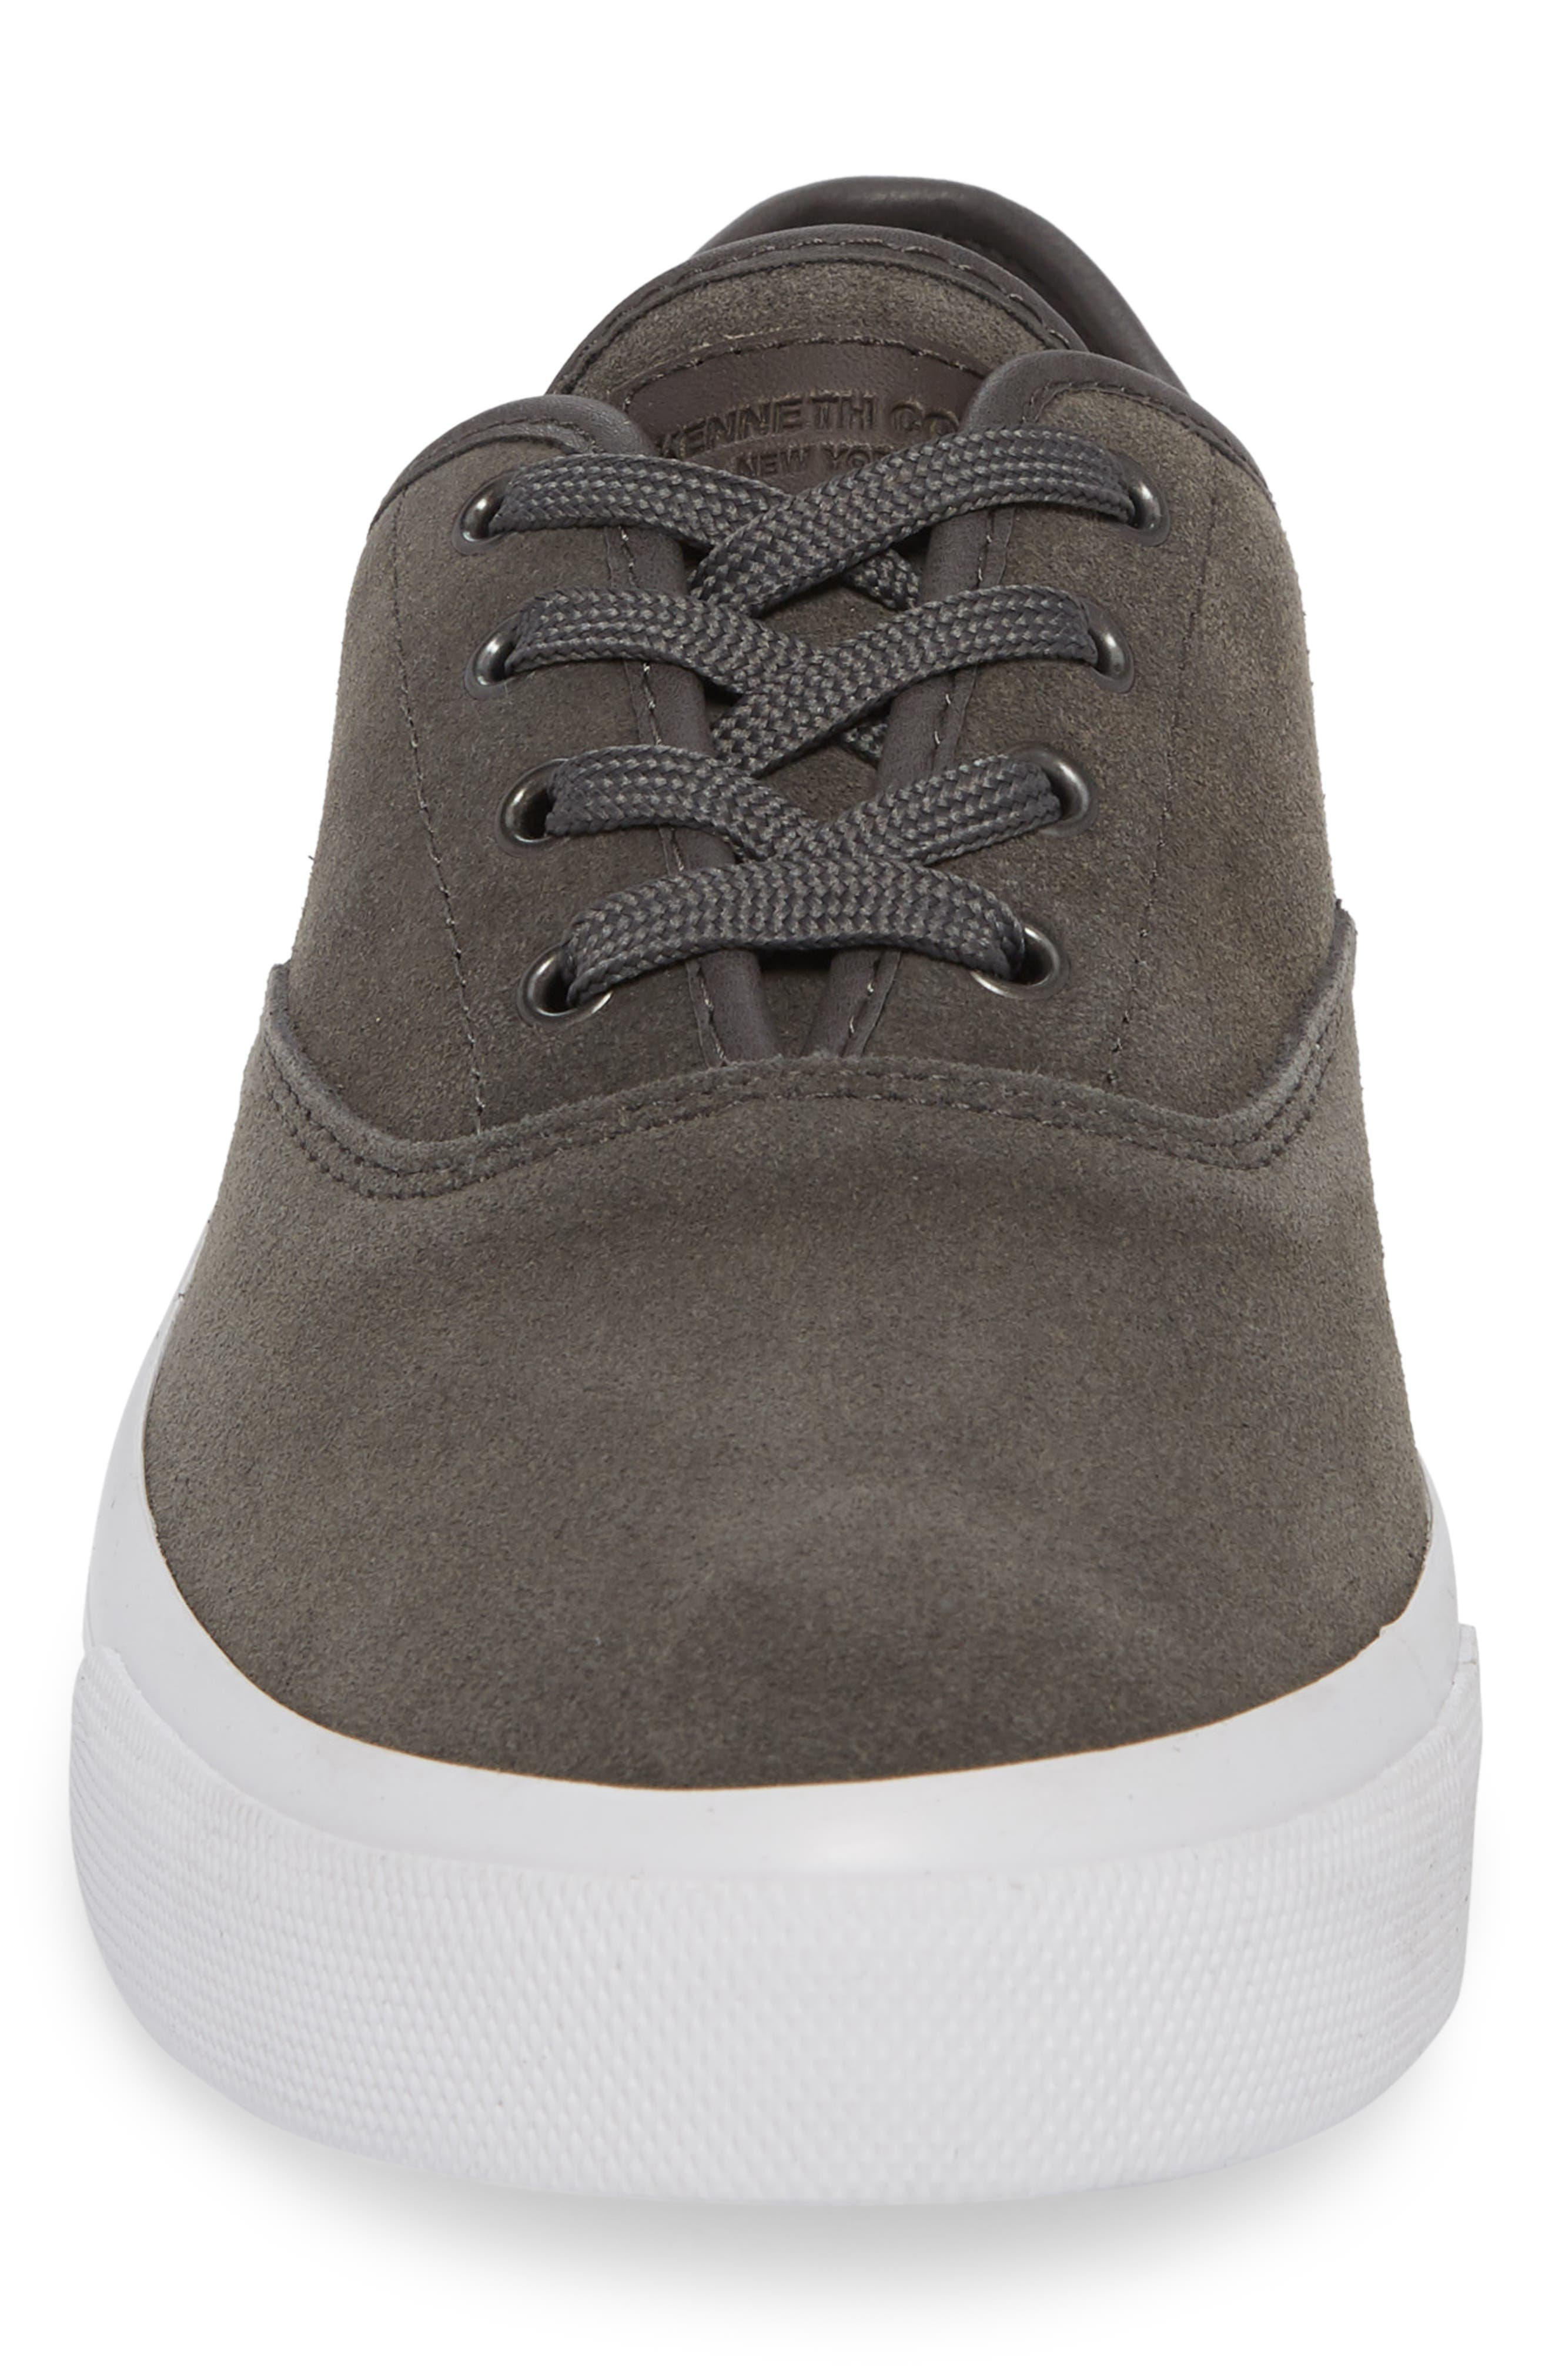 Toor Low Top Sneaker,                             Alternate thumbnail 4, color,                             Grey Combo Suede